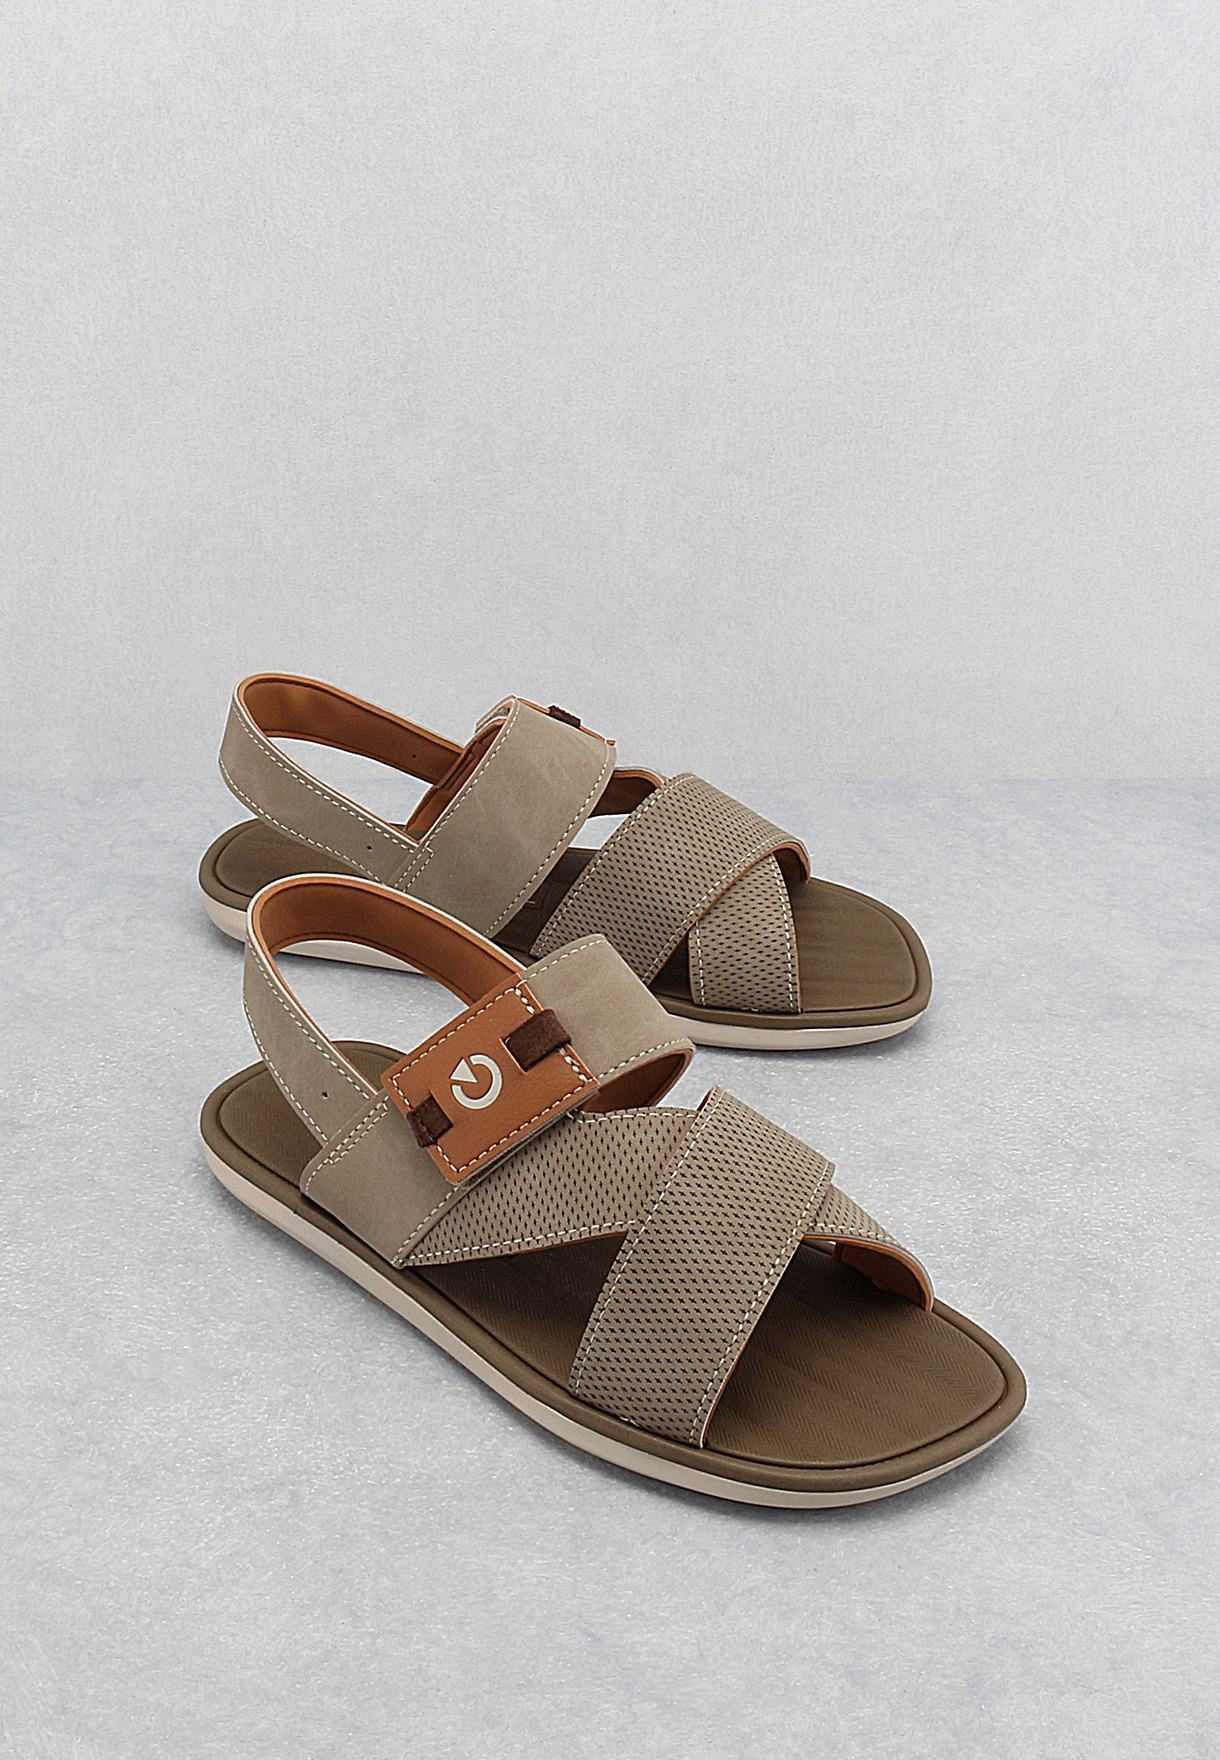 Cartago Mali XI Sandals